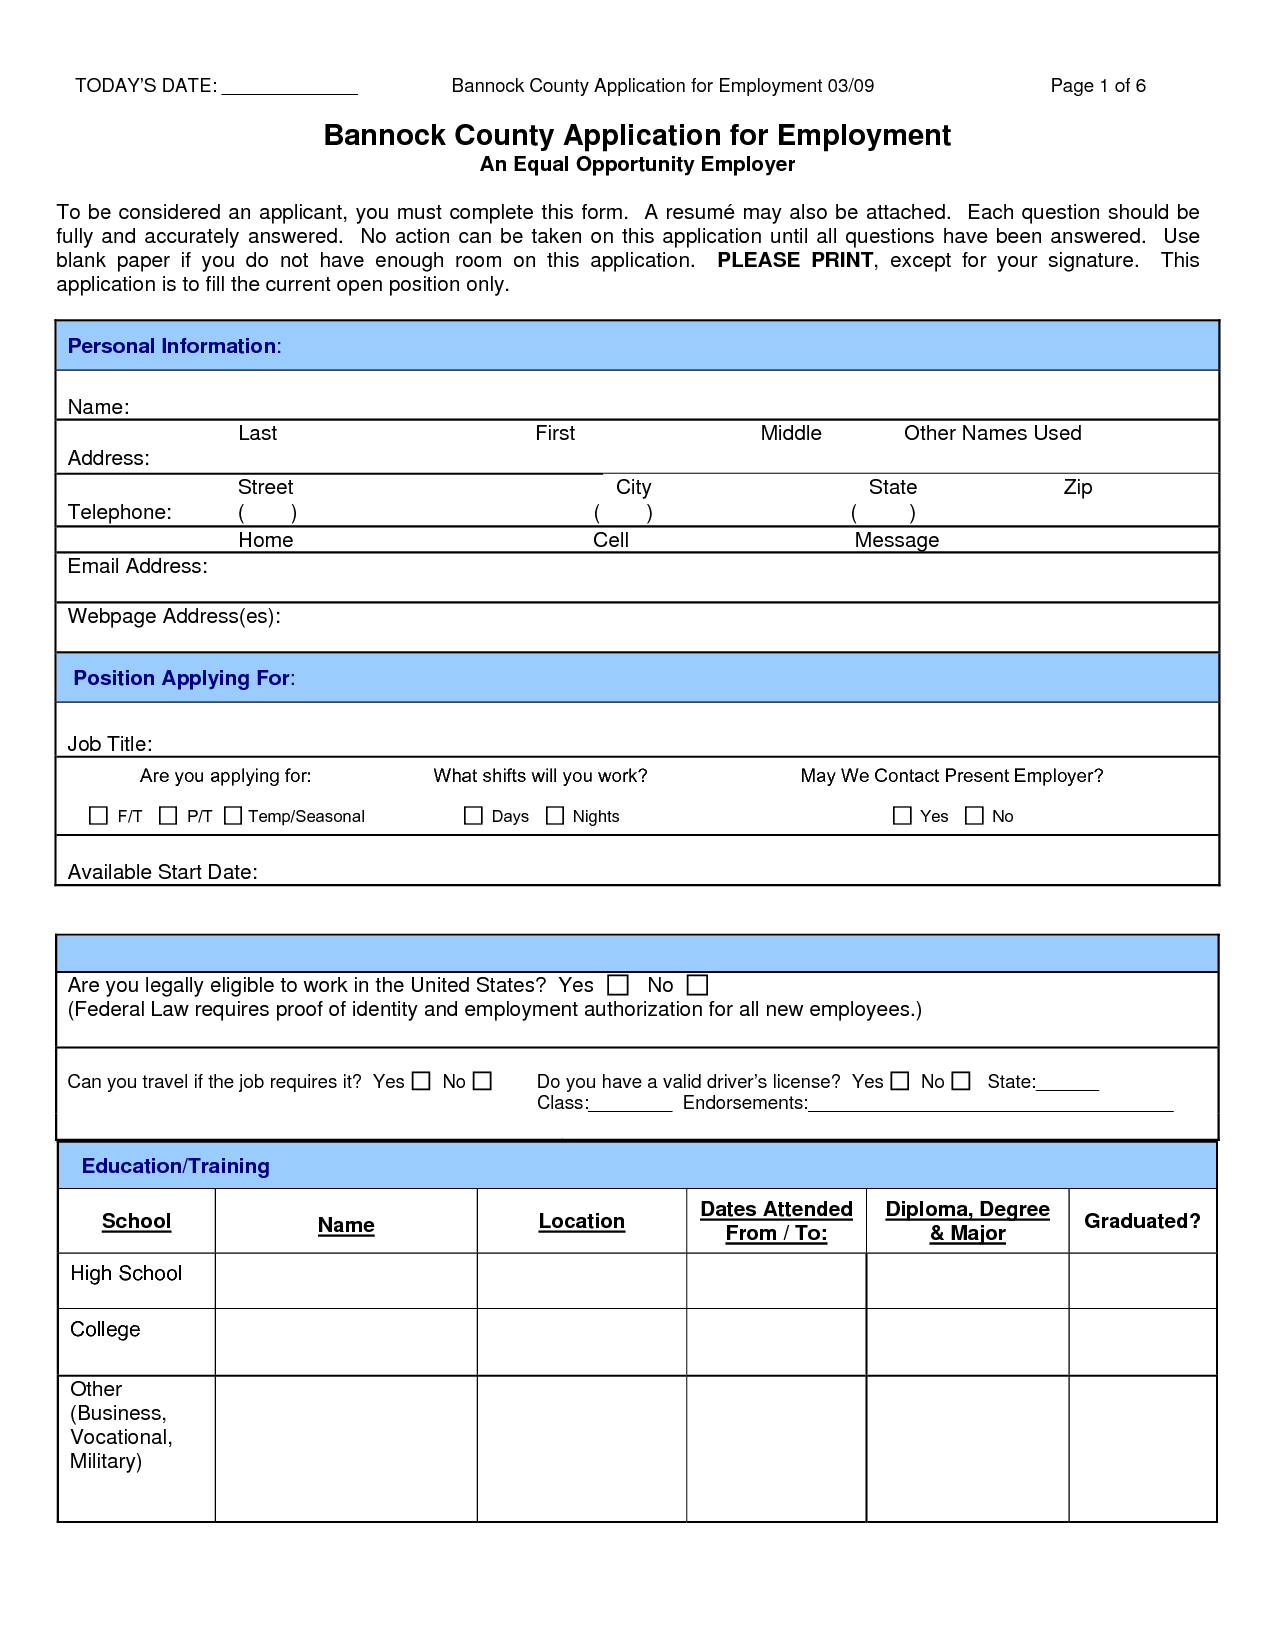 Sample Job Application Form PDF Bannock Country Application For Employment